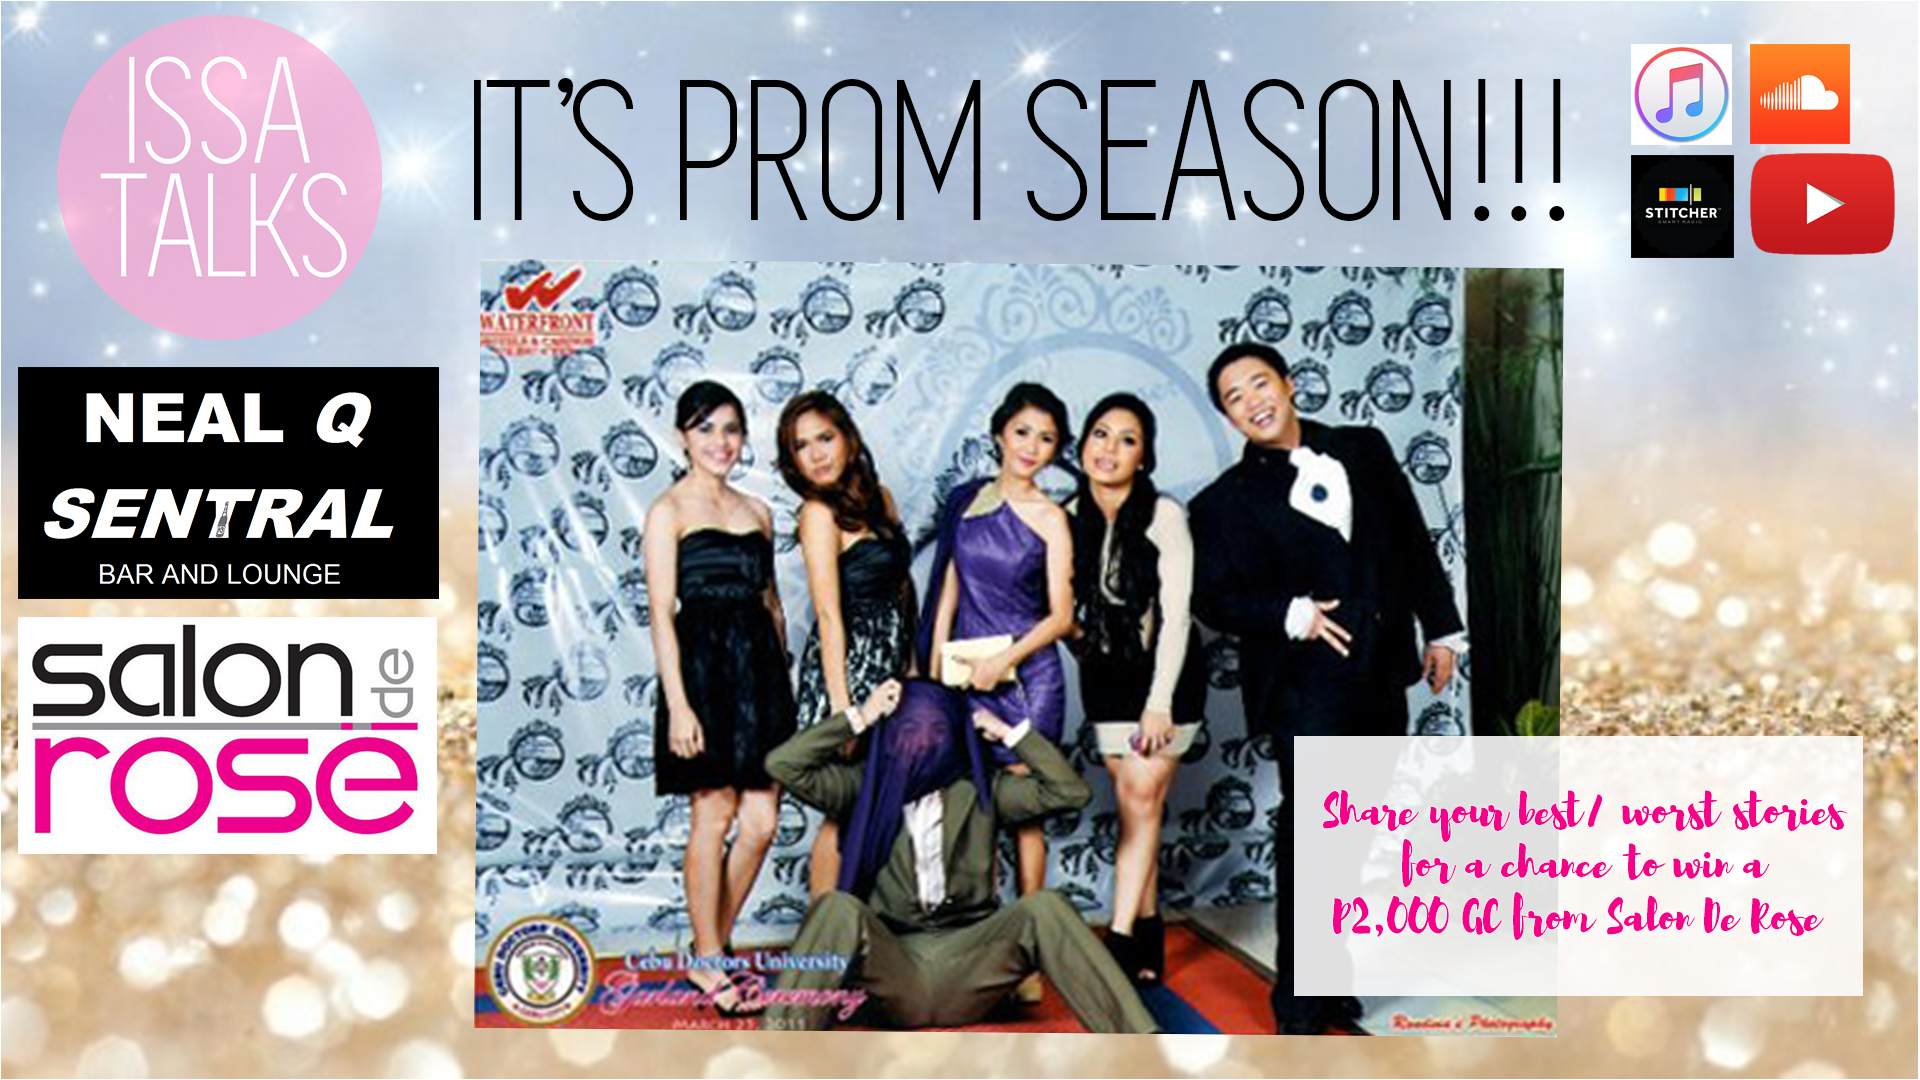 IssaTalks Podcast Ep. 8: PROM SEASON! Horror Stories, Awkward Moments, Memories That Will Make You Cringe!